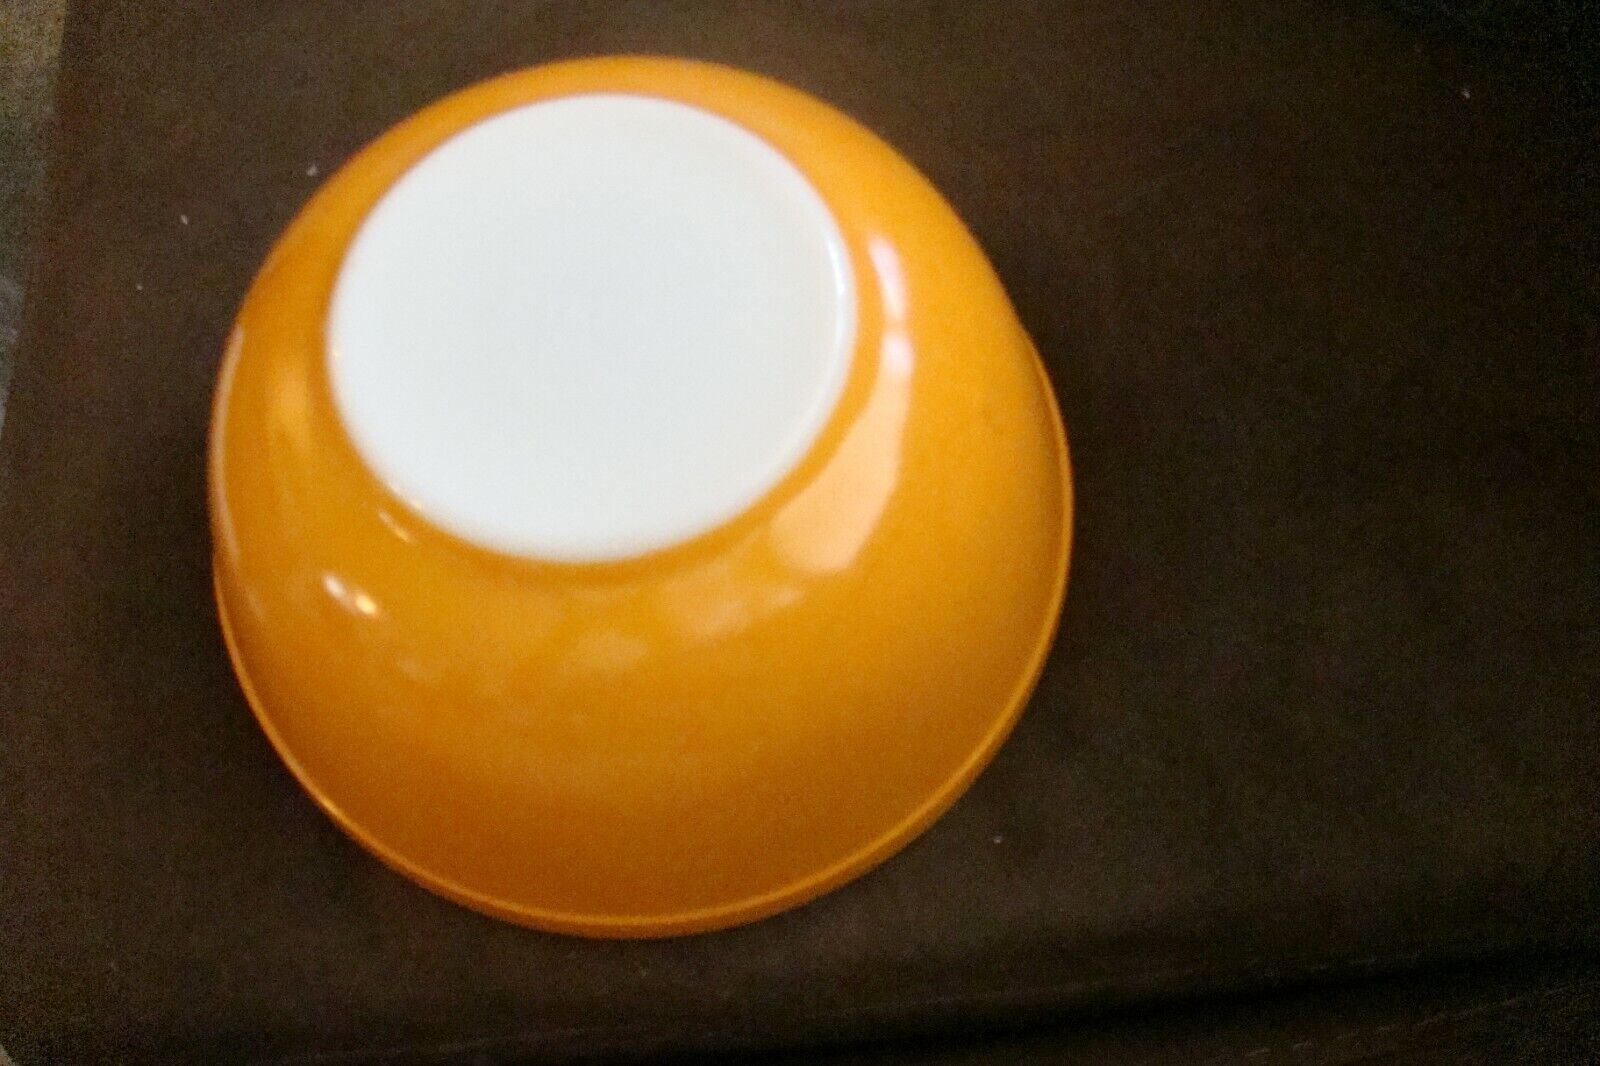 ORANGE MIXING BOWL PYREX NO. 403 2 1/2 QT. OVENWARE MADE IN USA - $25.00